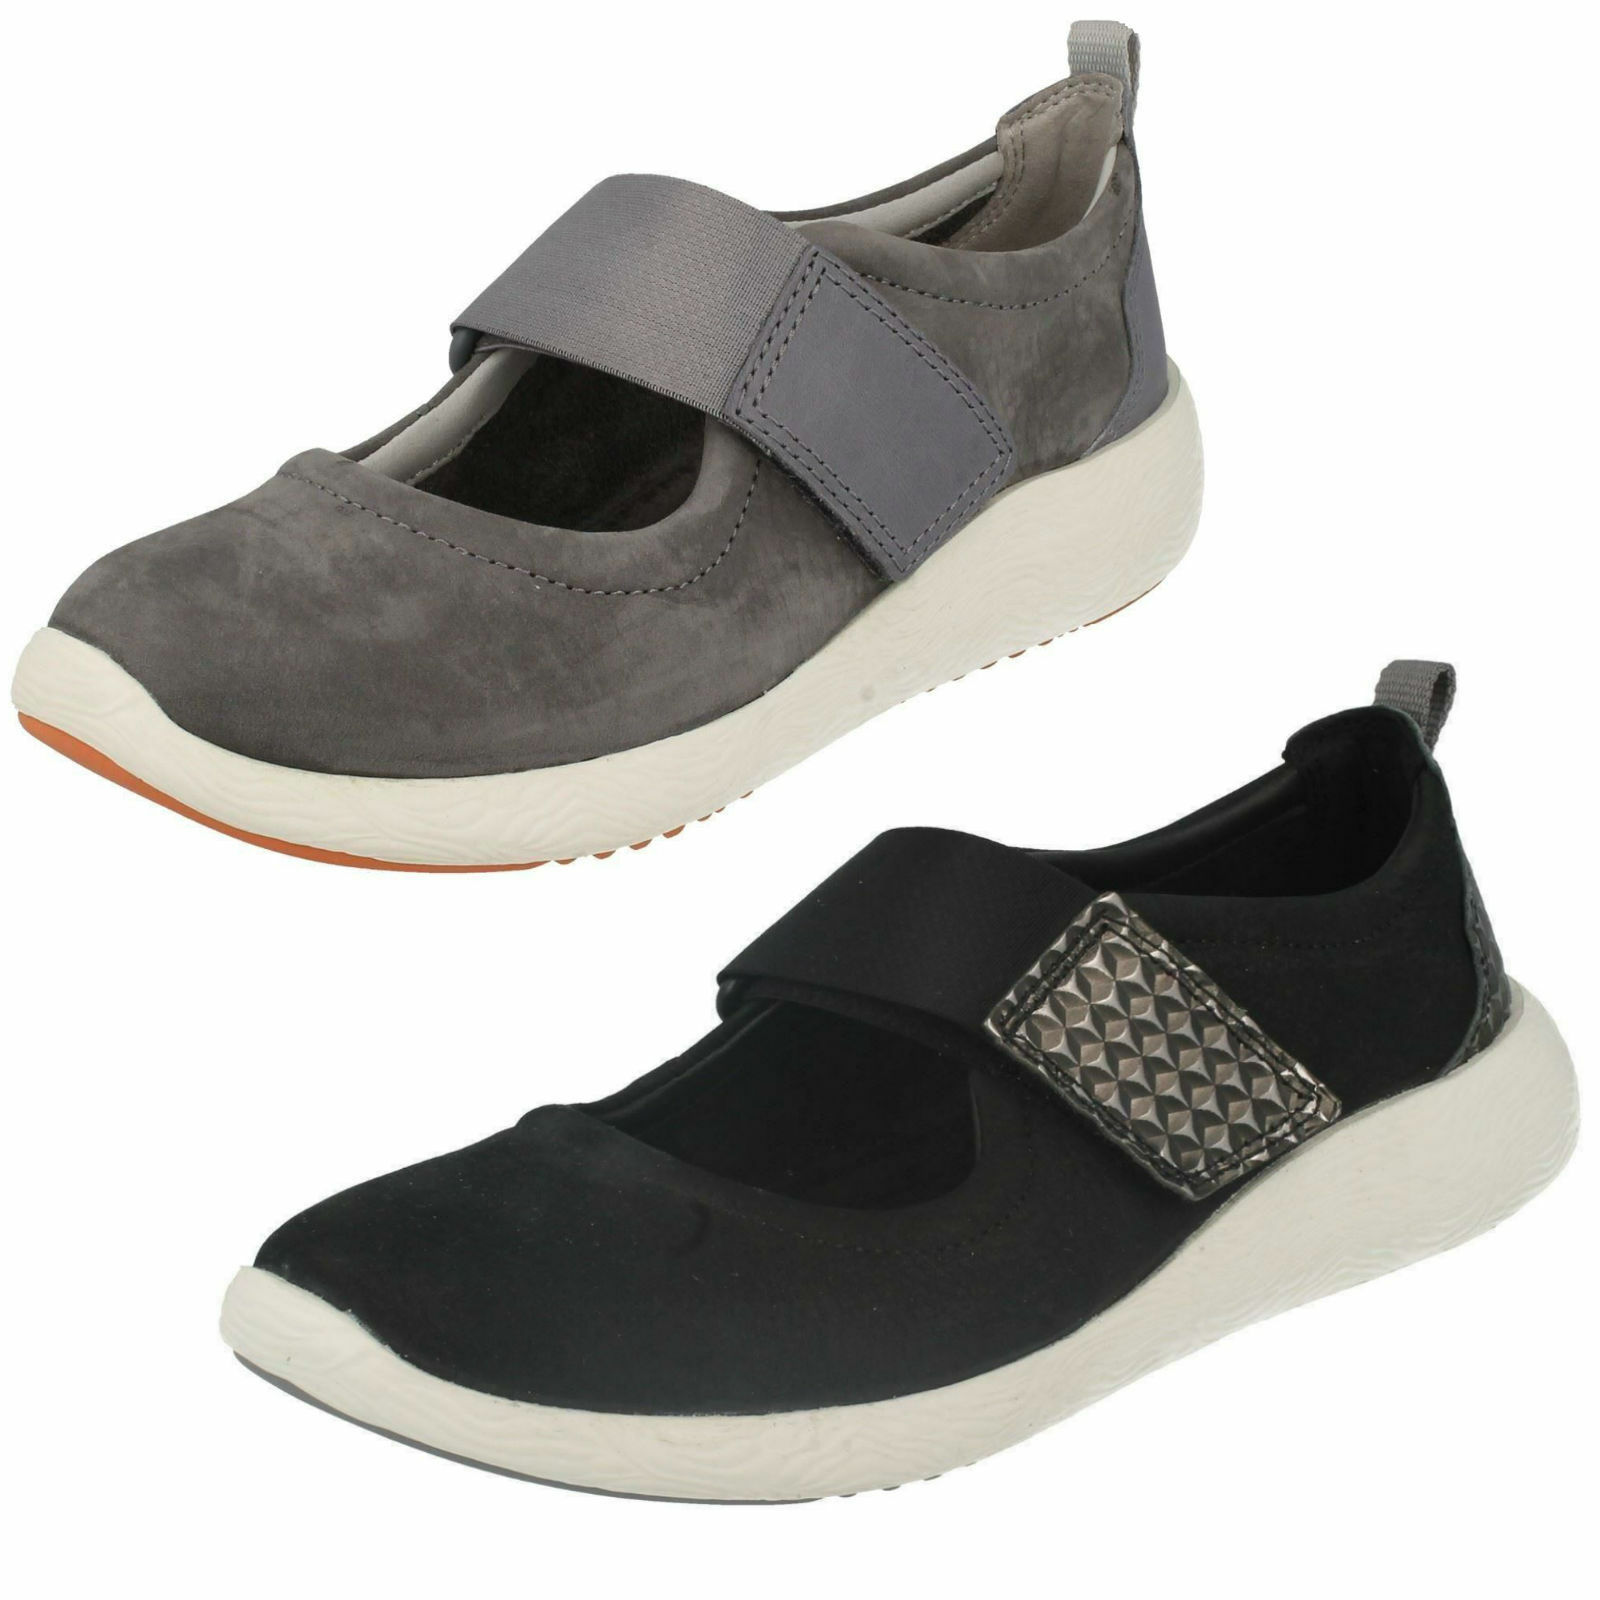 Ladies Clarks Cowley Folly Black Or Grey Nubuck Leather Strap Shoes